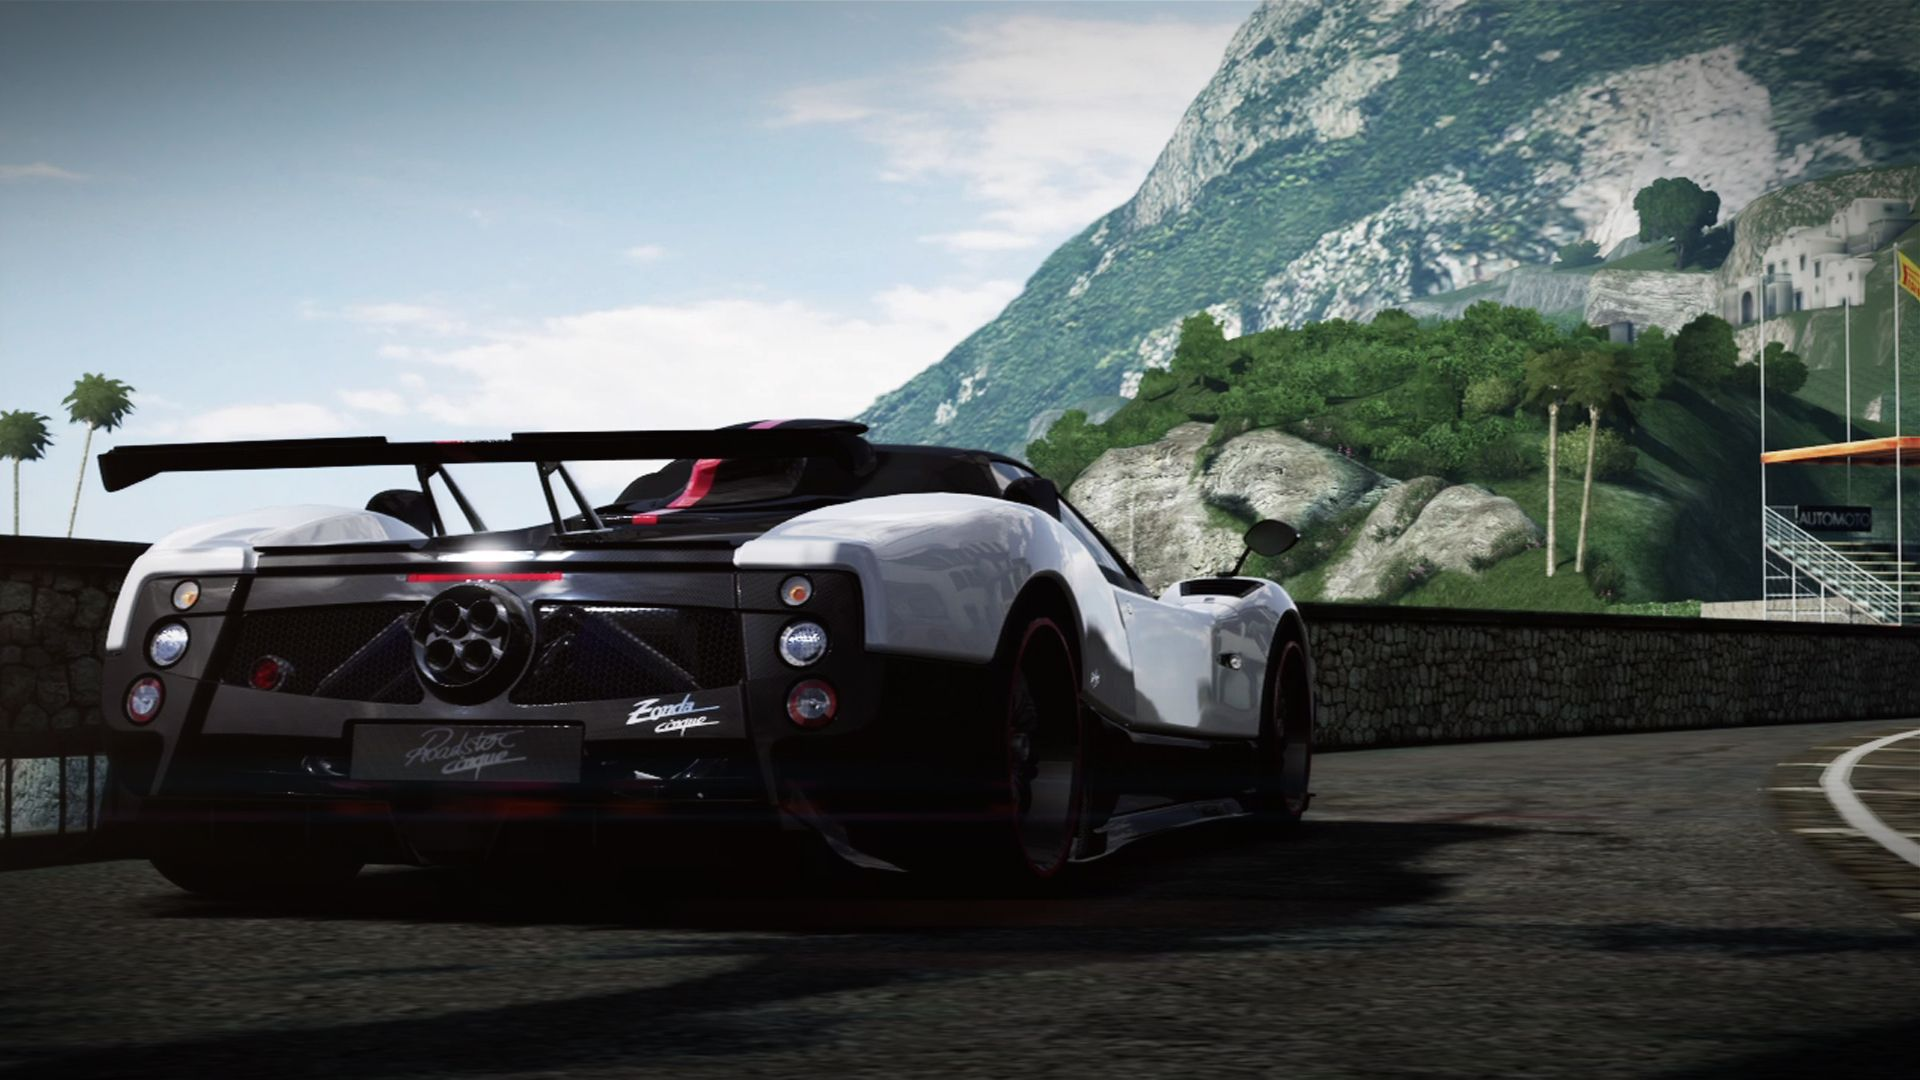 Exceptionnel Gran Turismo Pagani Zonda R | Games HD Wallpapers | Pinterest | Pagani Zonda